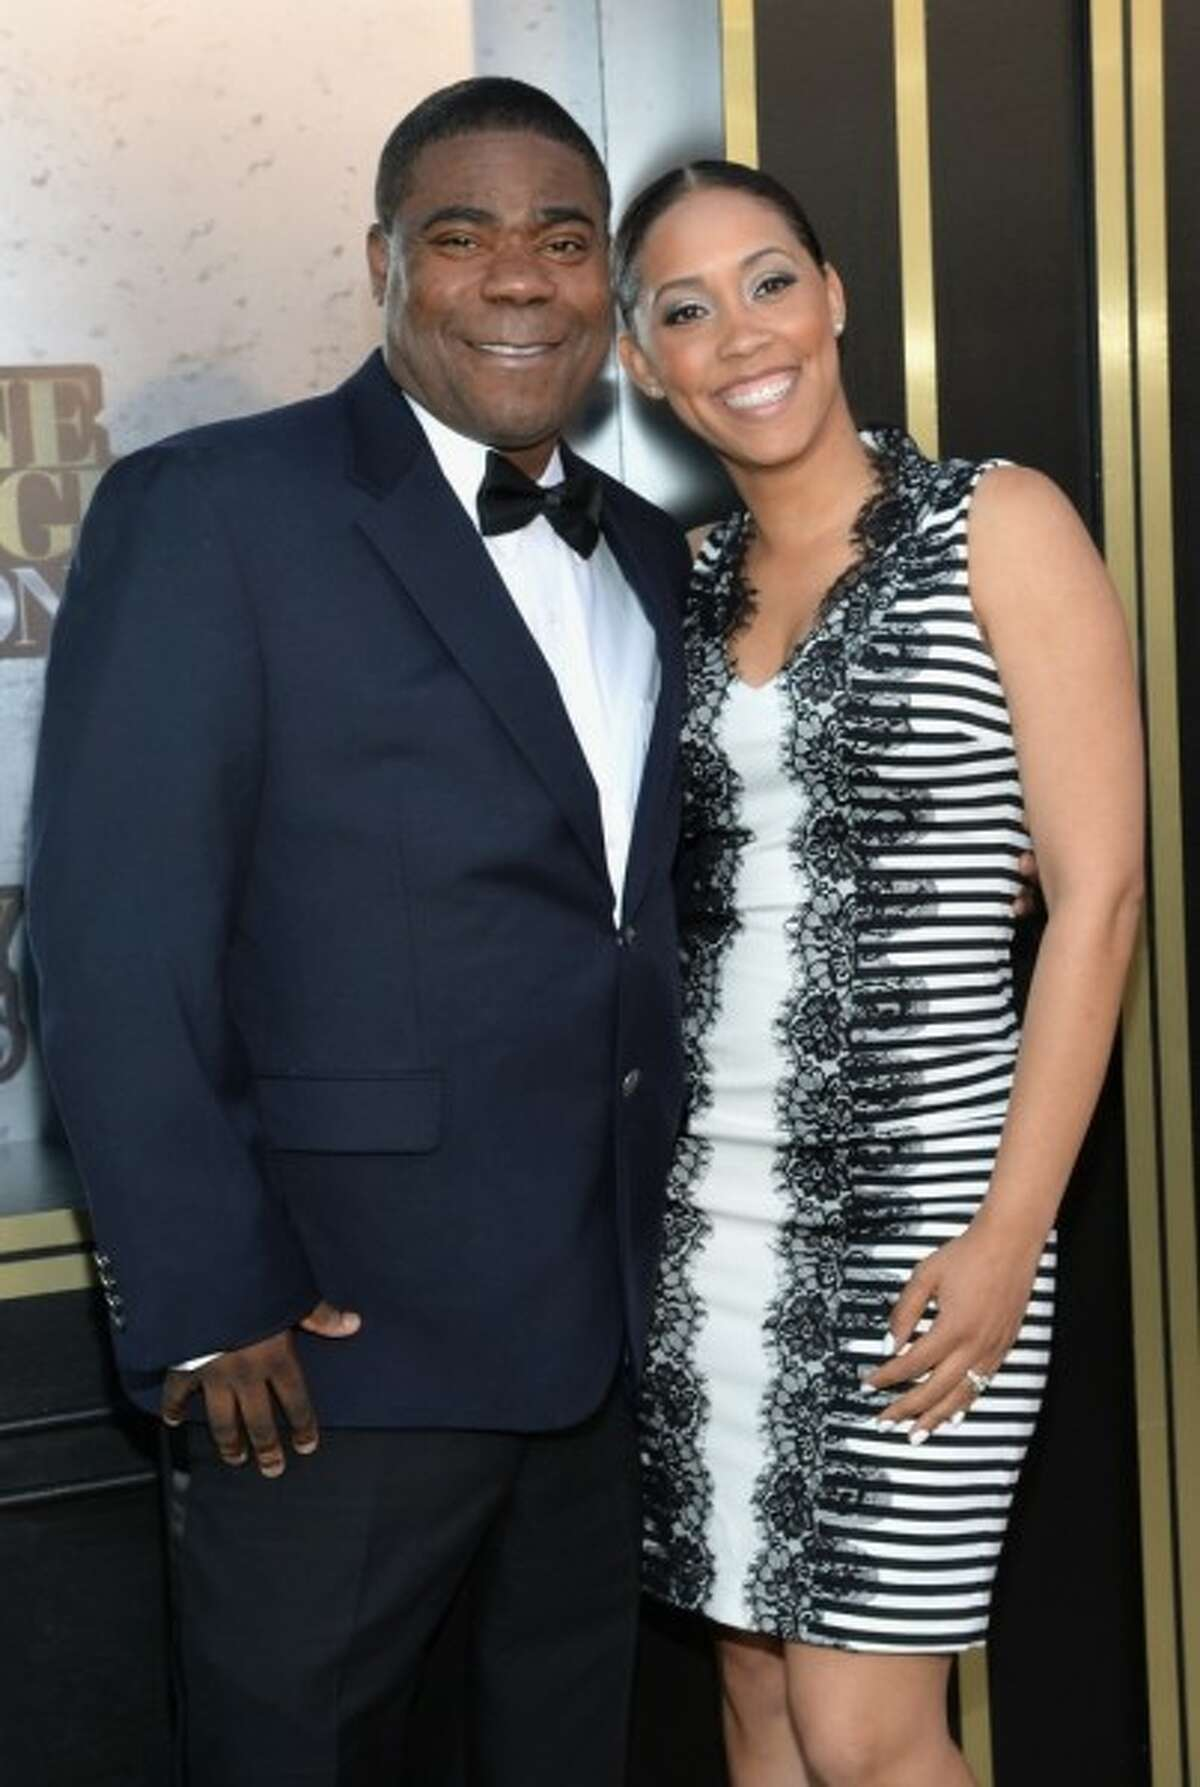 Tracy Morgan and Megan Wollover wed in 2015.